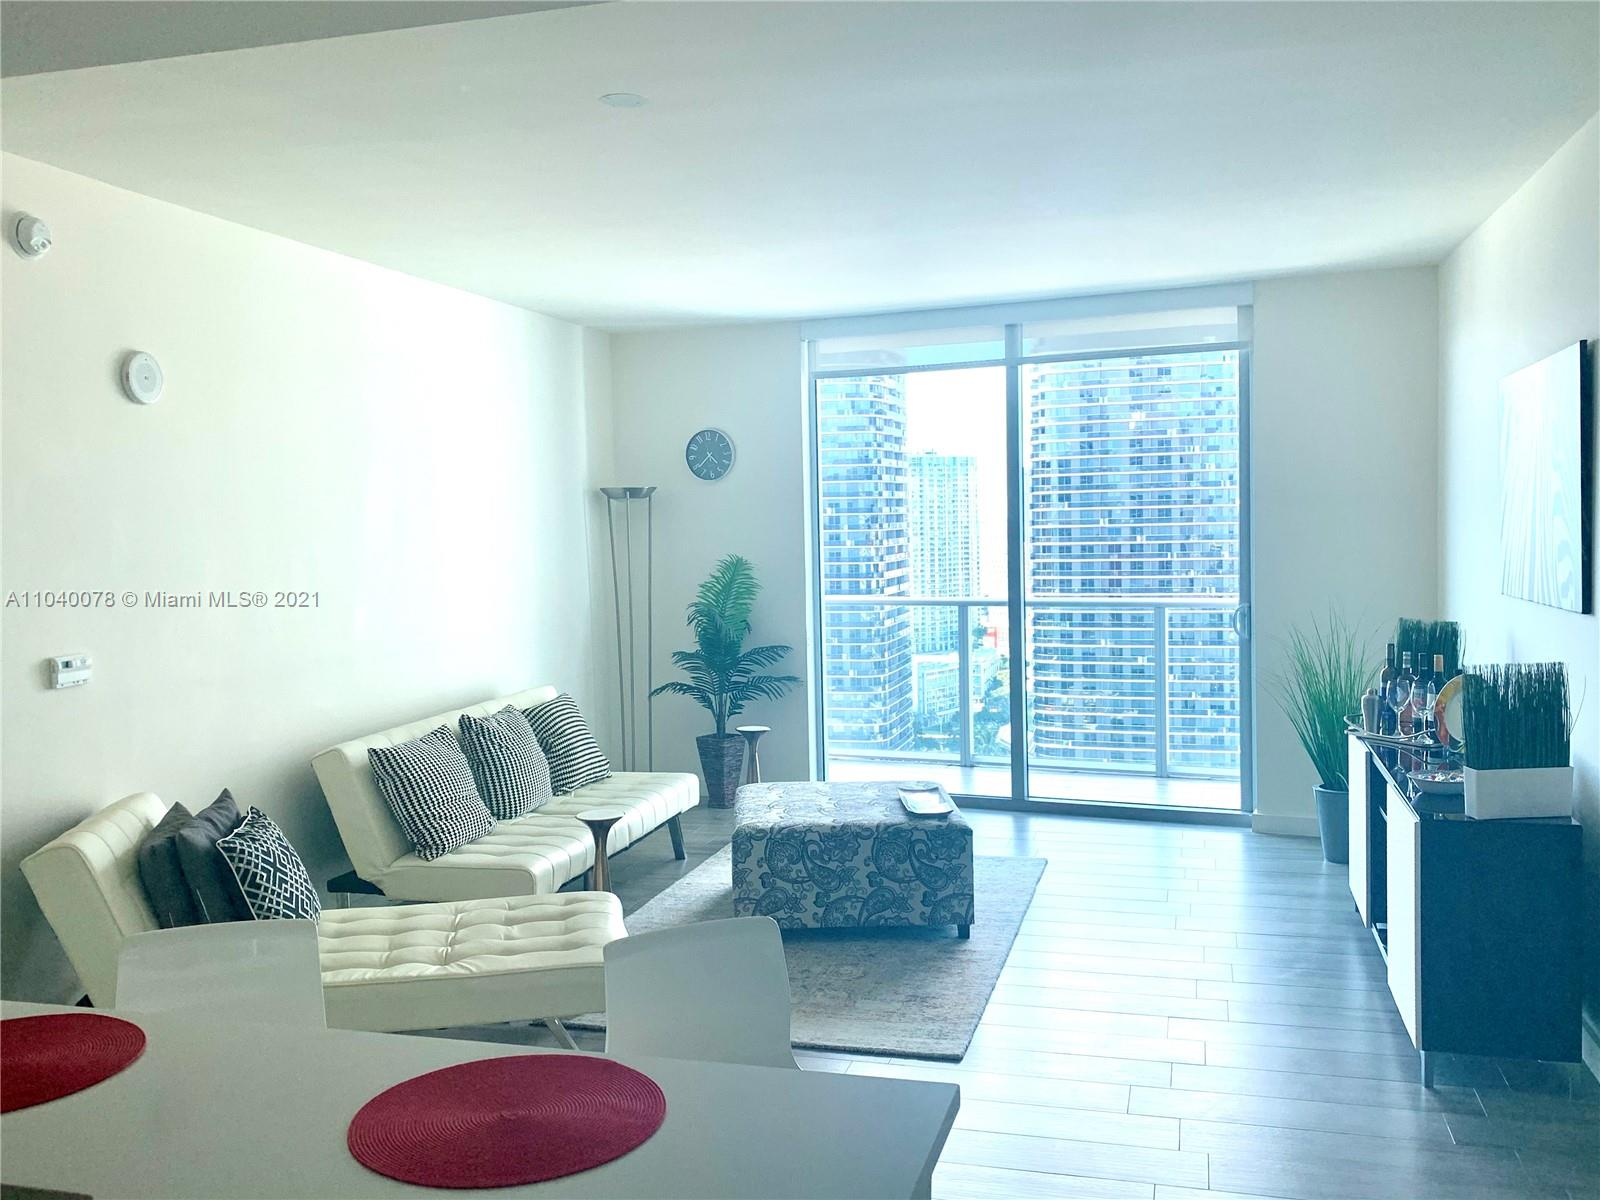 BEAUTIFUL, MODERN AND POSSIBLY TURNKEY FURNISHED 1 BEDROOM AND 1 BATH AT MILLECENTO. THIS UNIT ORIGINALLY CAME WITH A PREMIUM PACKAGE INCLUDING UPGRADES FROM THE DEVELOPER! (STUNNING TILES EVERYWHERE, A WALK-IN CLOSET AND WINDOWS SHADES).  IT IS THE HIGHEST 09 LINE UNIT CURRENTLY AVAILABLE ON THE MARKET.  ITS LARGE BALCONY OVERLOOKS BRICKELL'S CENTER OF ACTION INCLUDING THE ENTIRE MARY BRICKELL VILLAGE AND HAS SUPERB CITY VIEWS YOU DO NOT WANT TO MISS. The building is located in the heart of Brickell, steps from all restaurants, shops and entertainment venues of Mary Brickell Village and Brickell City Center. Steps away from the metro rail and 2 metro mover stations. Great amenities that include a rooftop pool, another pool on the 9th, a 24 Hour gym, a theater, lounge, kids room etc.